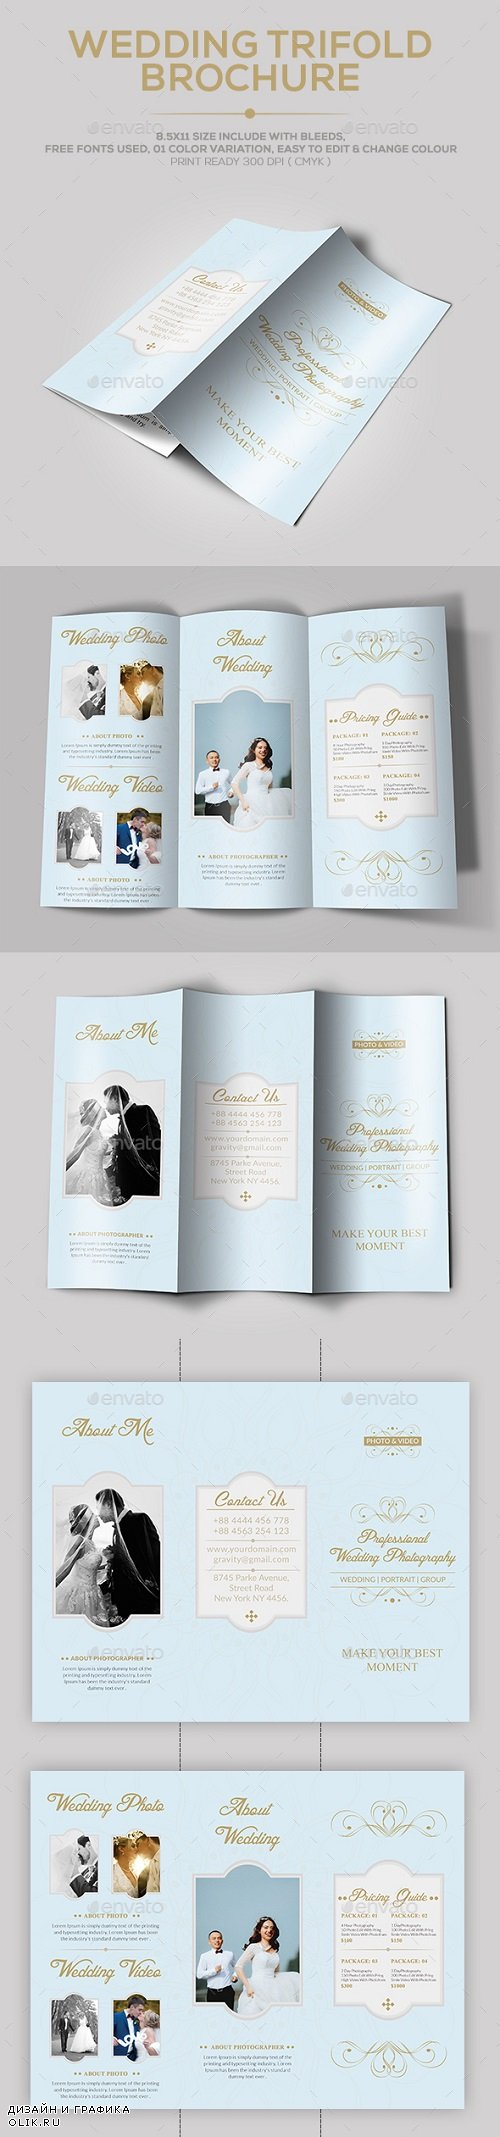 Wedding Brochure template - 19902041